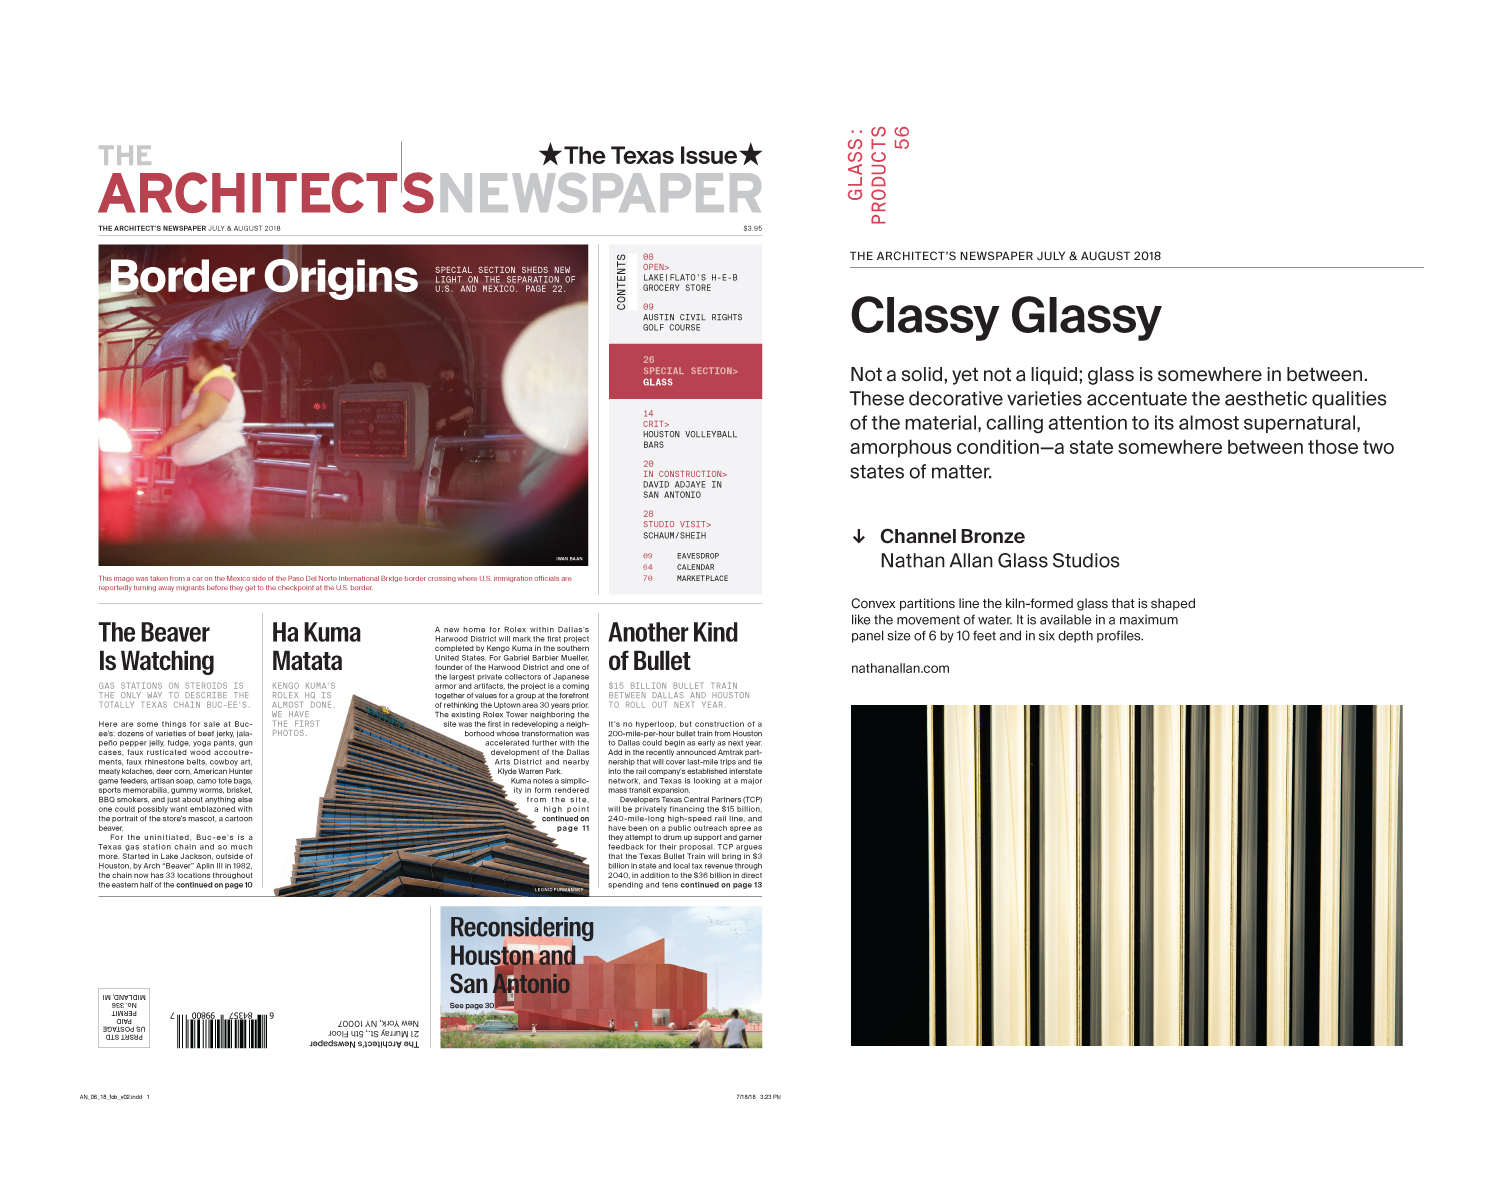 The Architect's Newspaper Channel Bronze